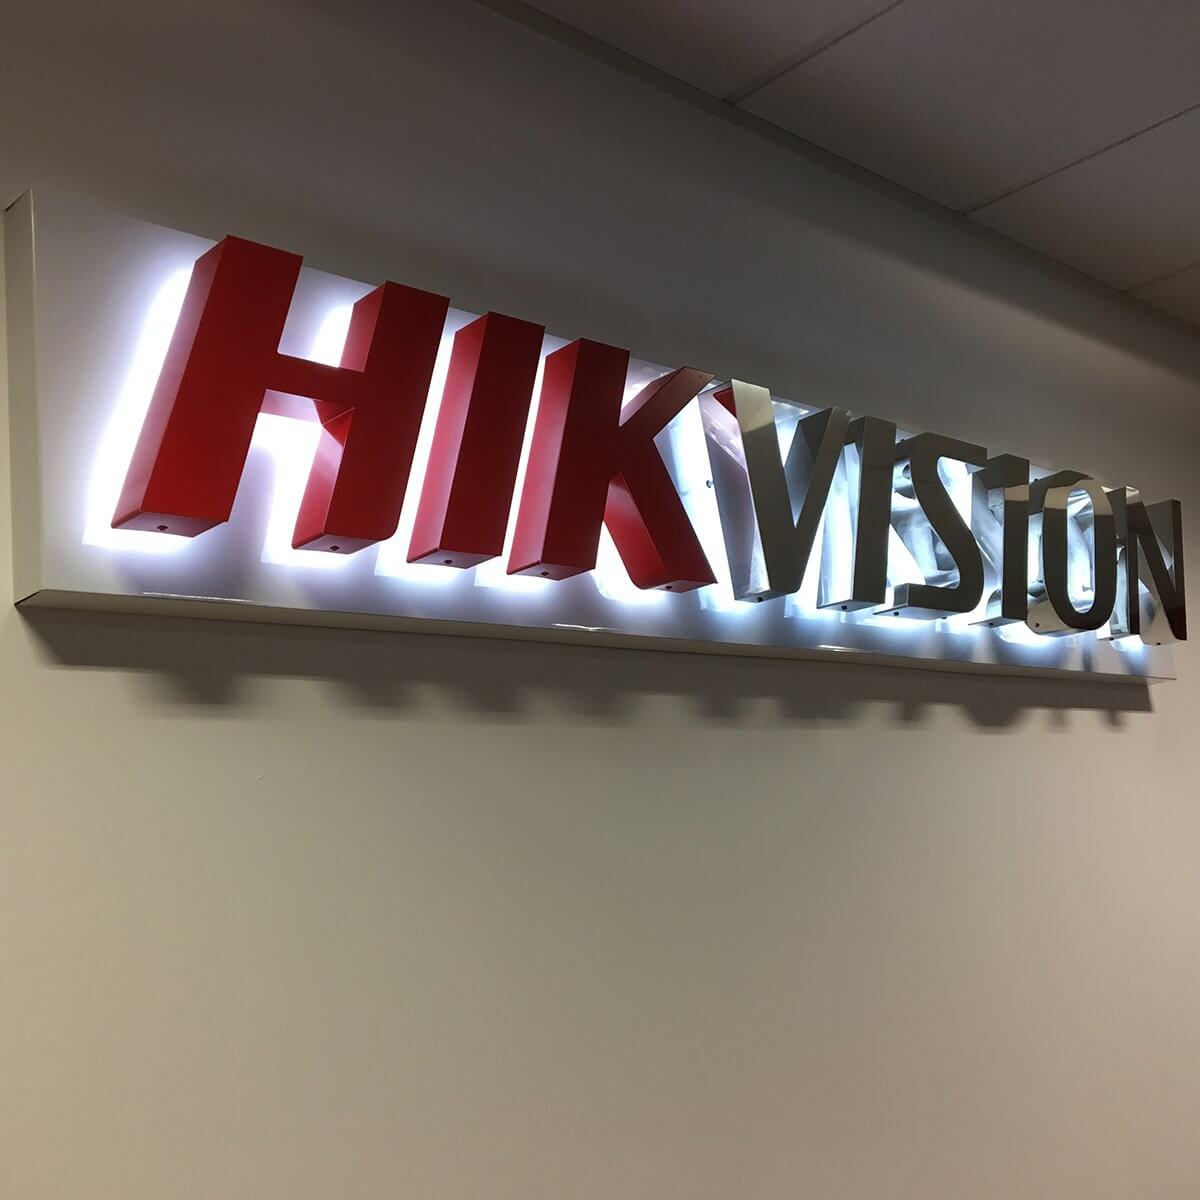 Design & Signage, HD Signs, Light up Signs